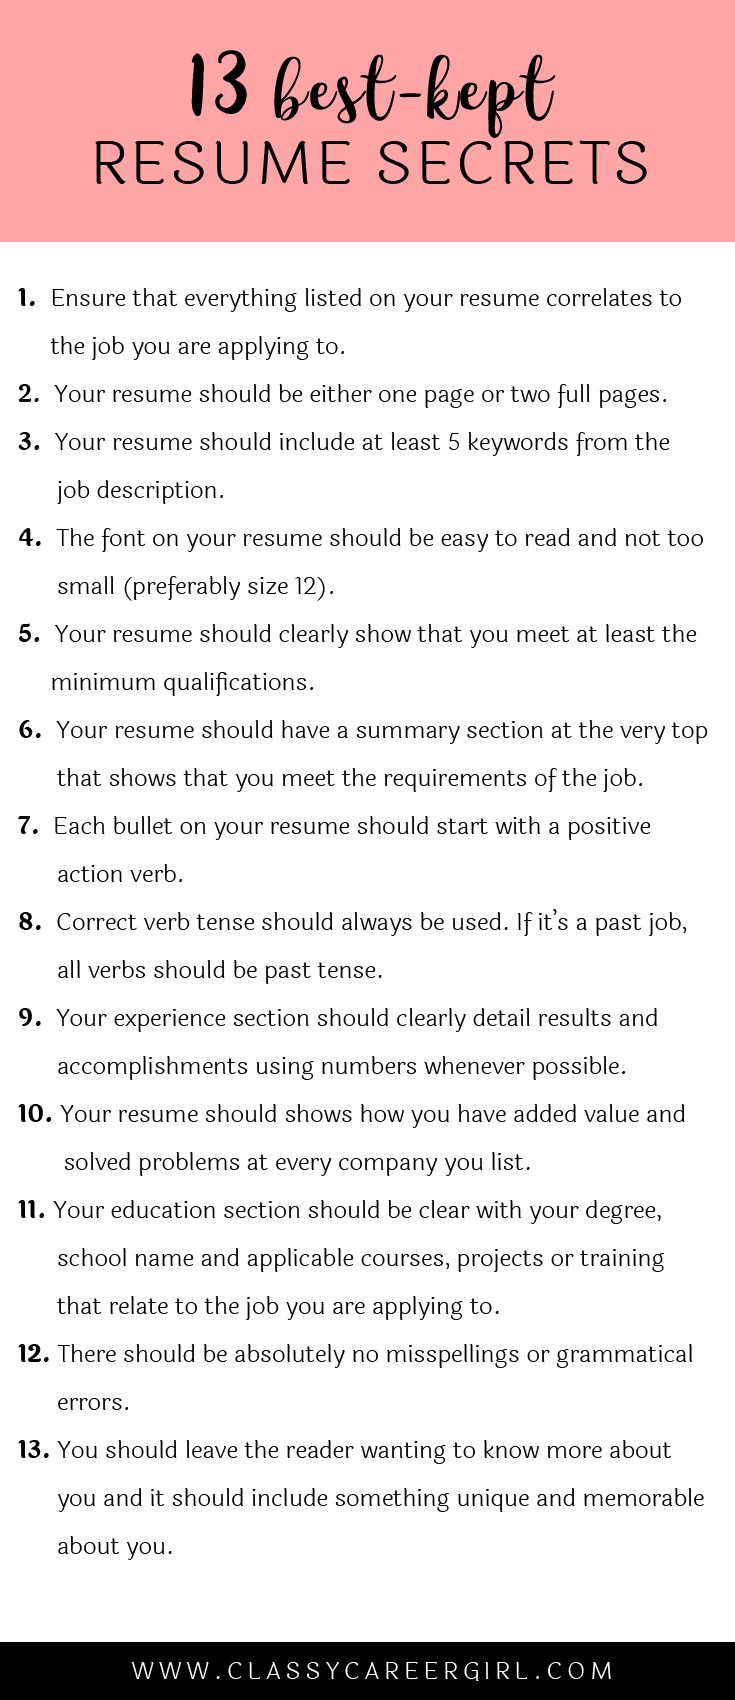 Opposenewapstandardsus  Nice  Ideas About Resume On Pinterest  Cv Format Resume Cv And  With Gorgeous Some Hiring Managers Will Toss Your Resume Out If You Dont Know These  With Captivating Resume Job Description Examples Also Military Resume Writers In Addition Csr Resume And Basic Resume Template Word As Well As Sample Finance Resume Additionally Best Resumes Format From Pinterestcom With Opposenewapstandardsus  Gorgeous  Ideas About Resume On Pinterest  Cv Format Resume Cv And  With Captivating Some Hiring Managers Will Toss Your Resume Out If You Dont Know These  And Nice Resume Job Description Examples Also Military Resume Writers In Addition Csr Resume From Pinterestcom